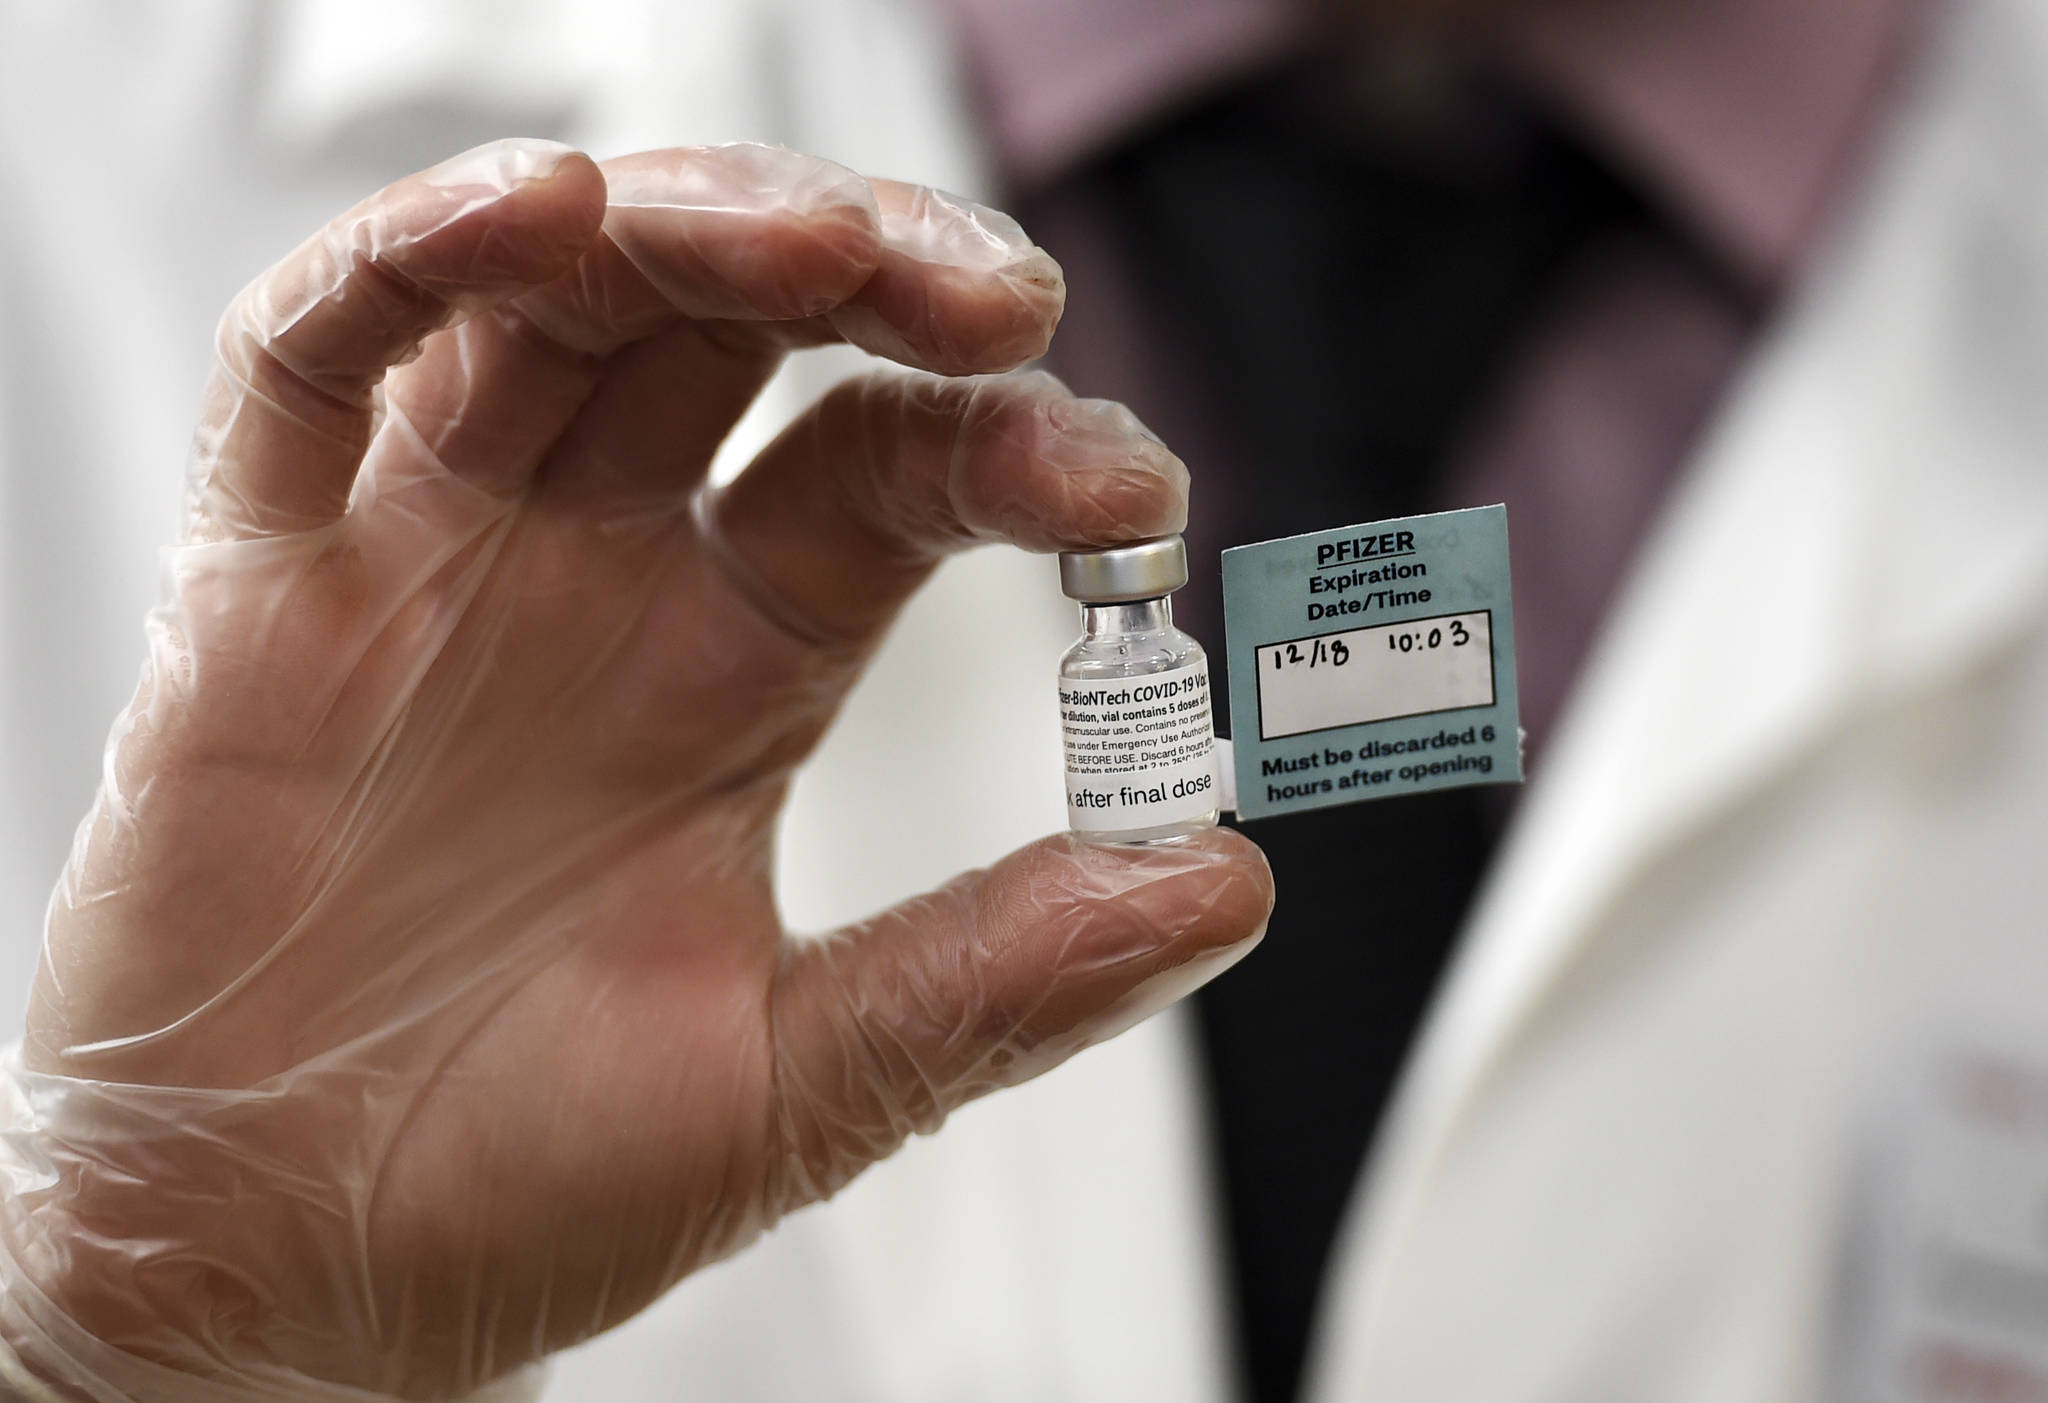 A vial of the Pfizer vaccine used at The Reservoir nursing facility, is shown, Friday, Dec. 18, 2020, in West Hartford, Conn. (AP Photo / Stephen Dunn,Pool)